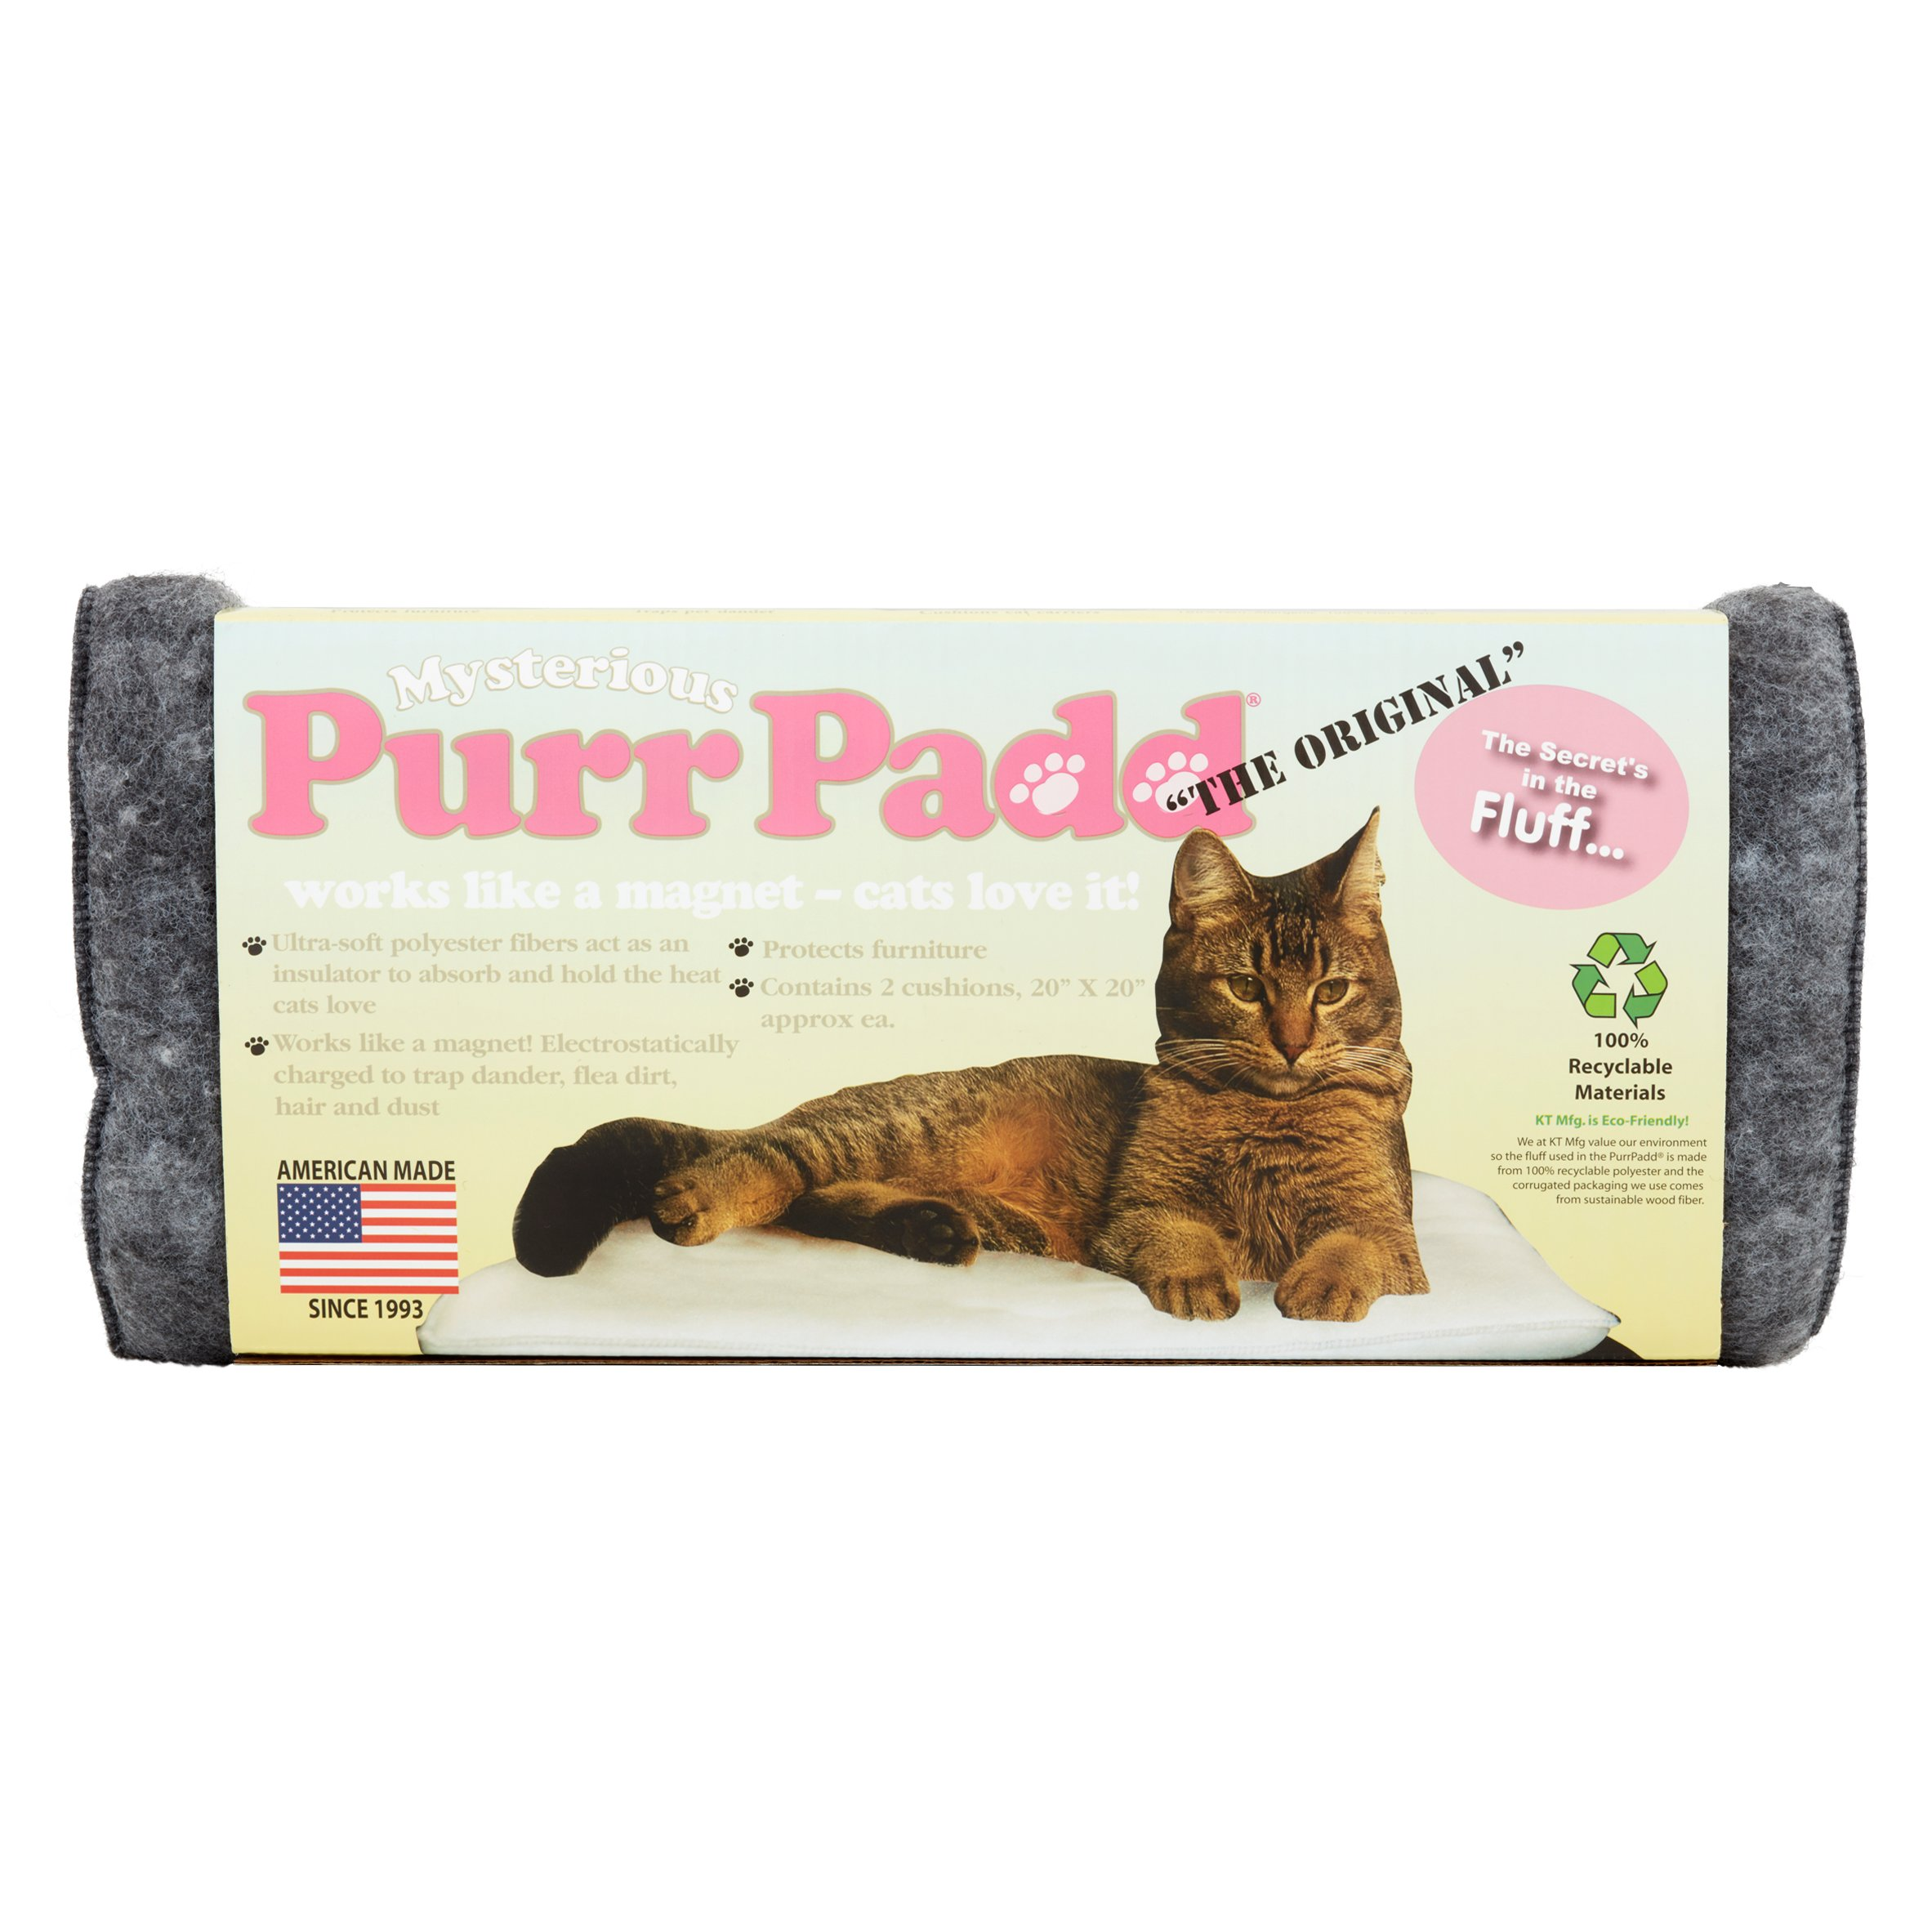 KT Manufacturing Purr Padd Eco Friendly Cat Bed (Set of 2)